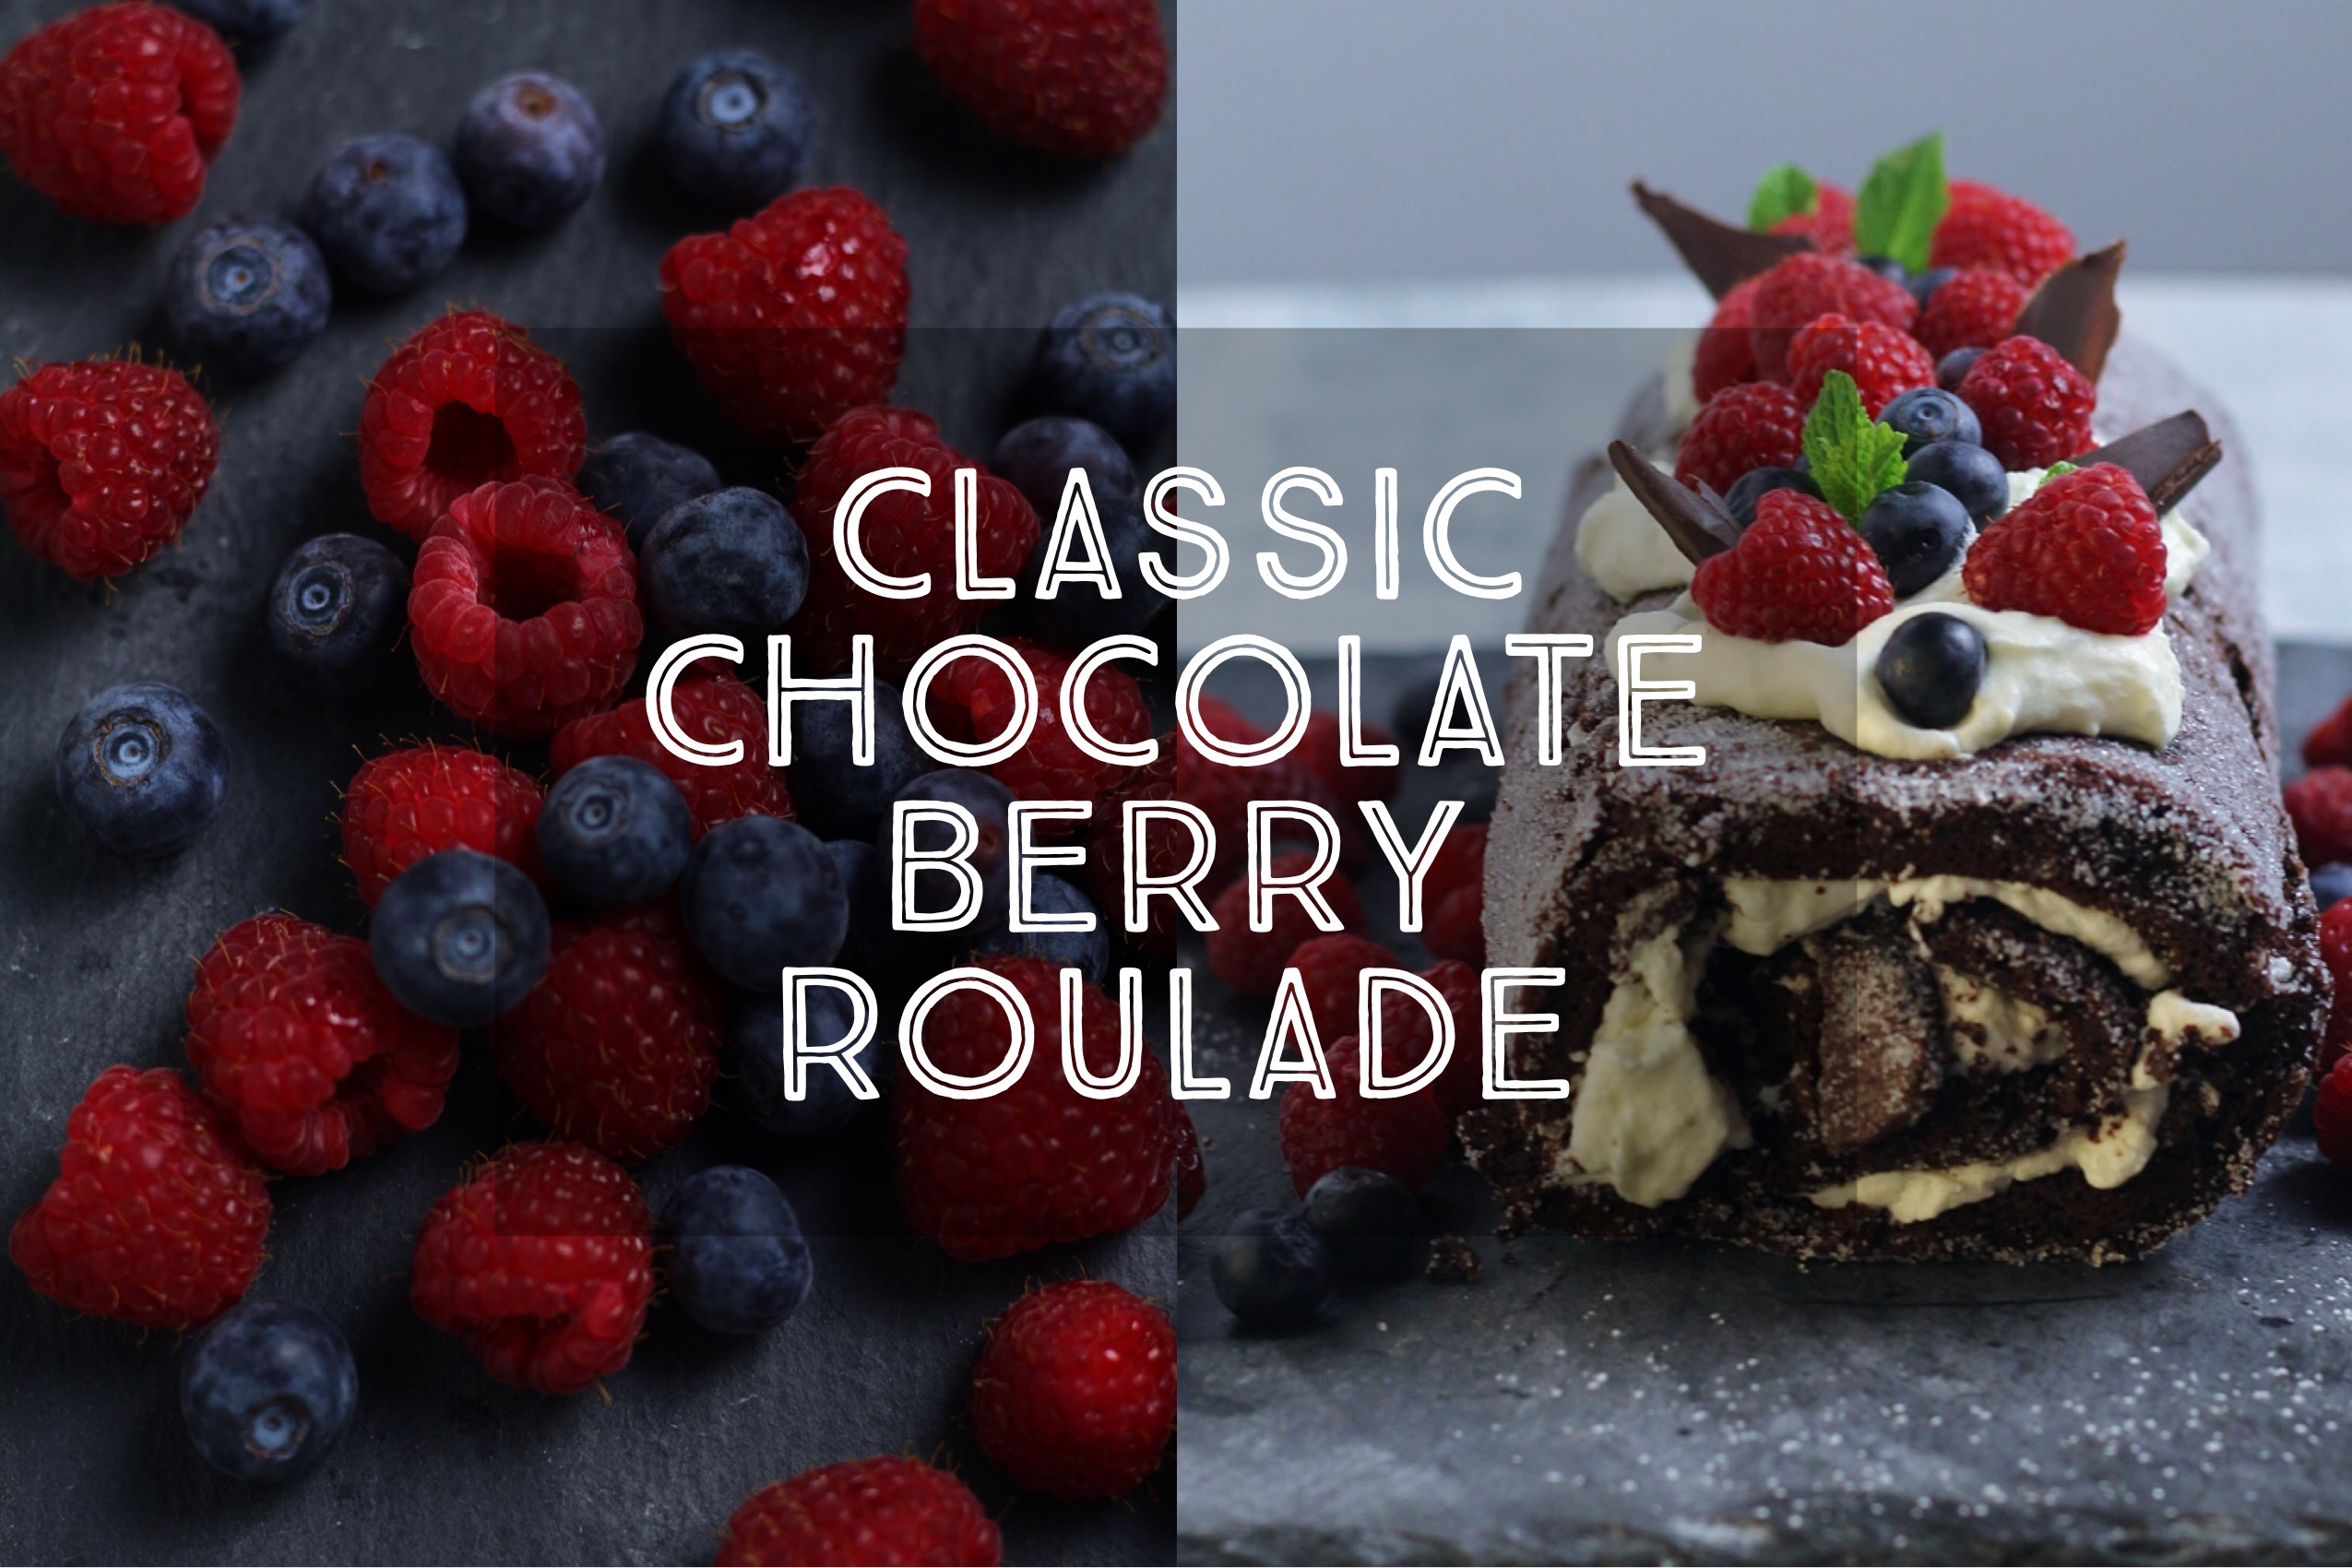 Classic Chocolate Berry Roulade